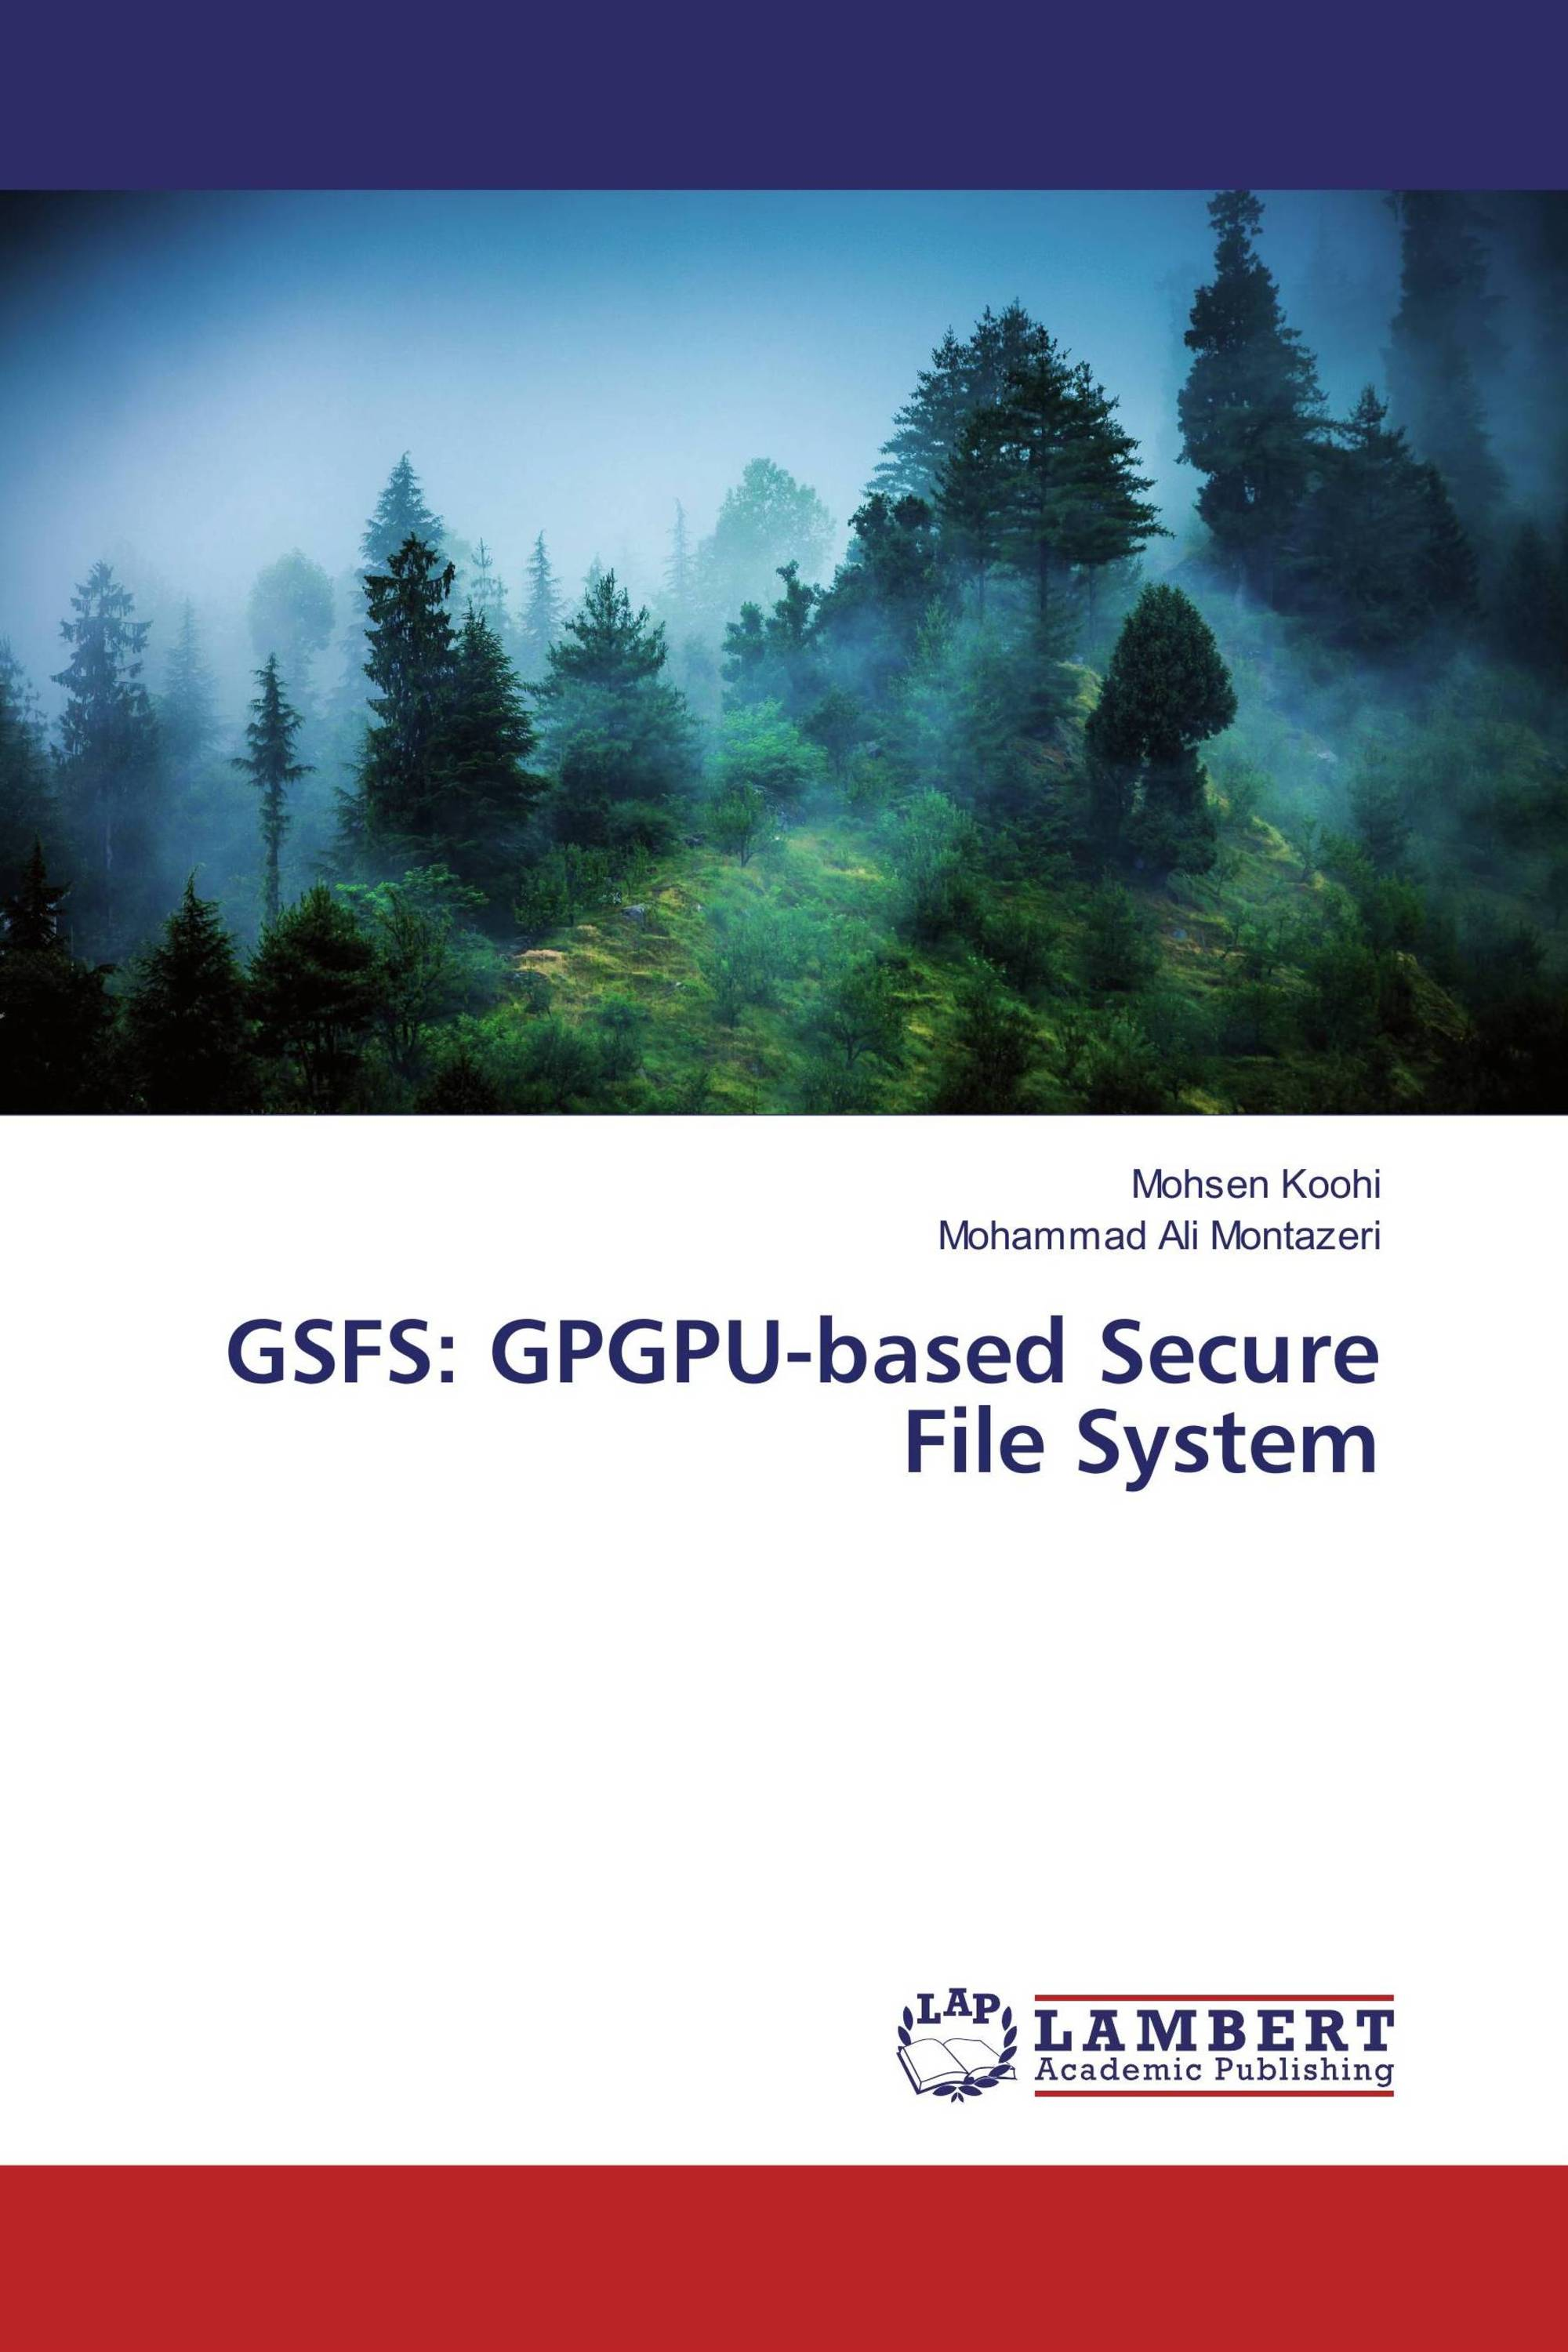 GSFS: GPGPU-based Secure File System